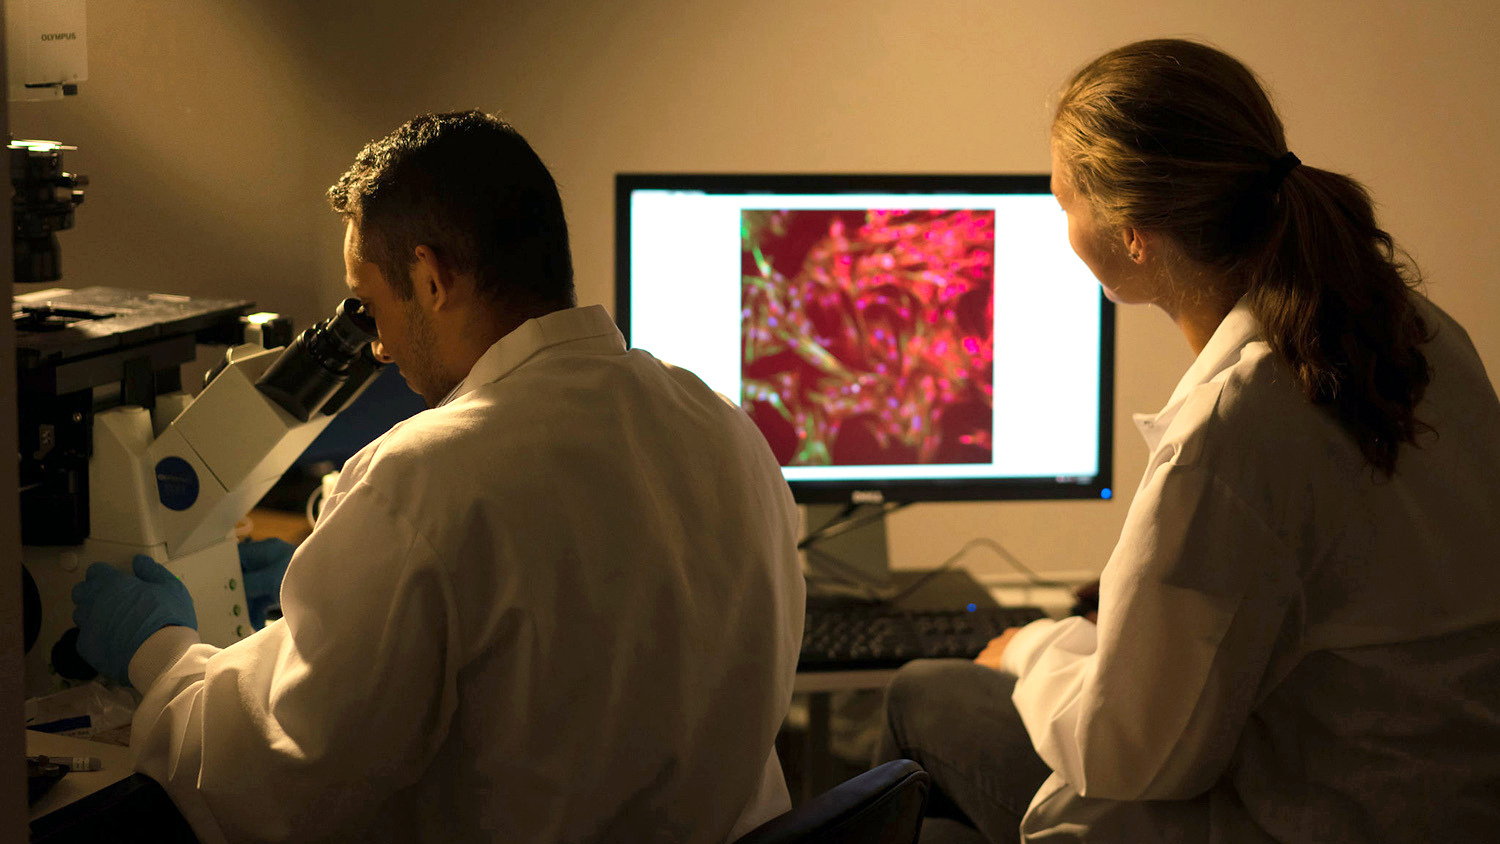 Two researchers look at samples under a microscope and on a screen in a darkened lab